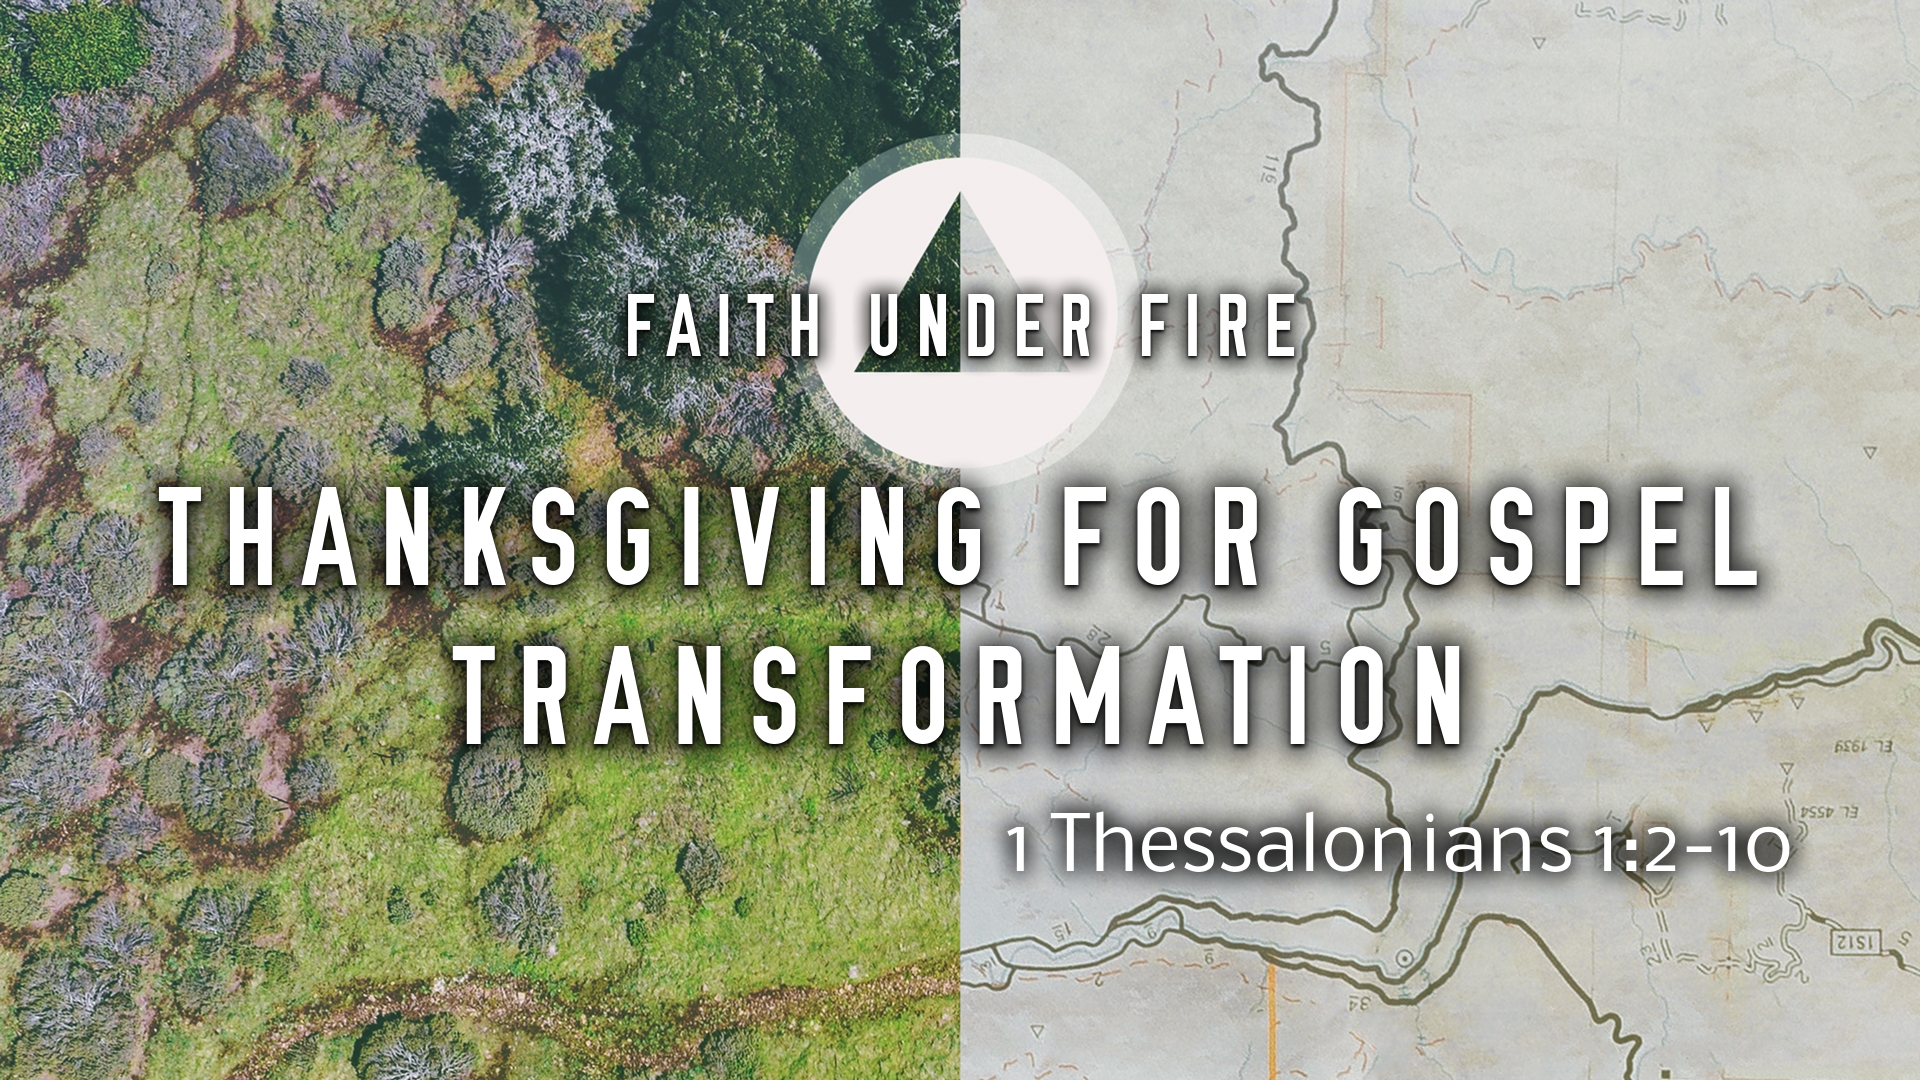 Image for the sermon Thanksgiving for Gospel Transformation